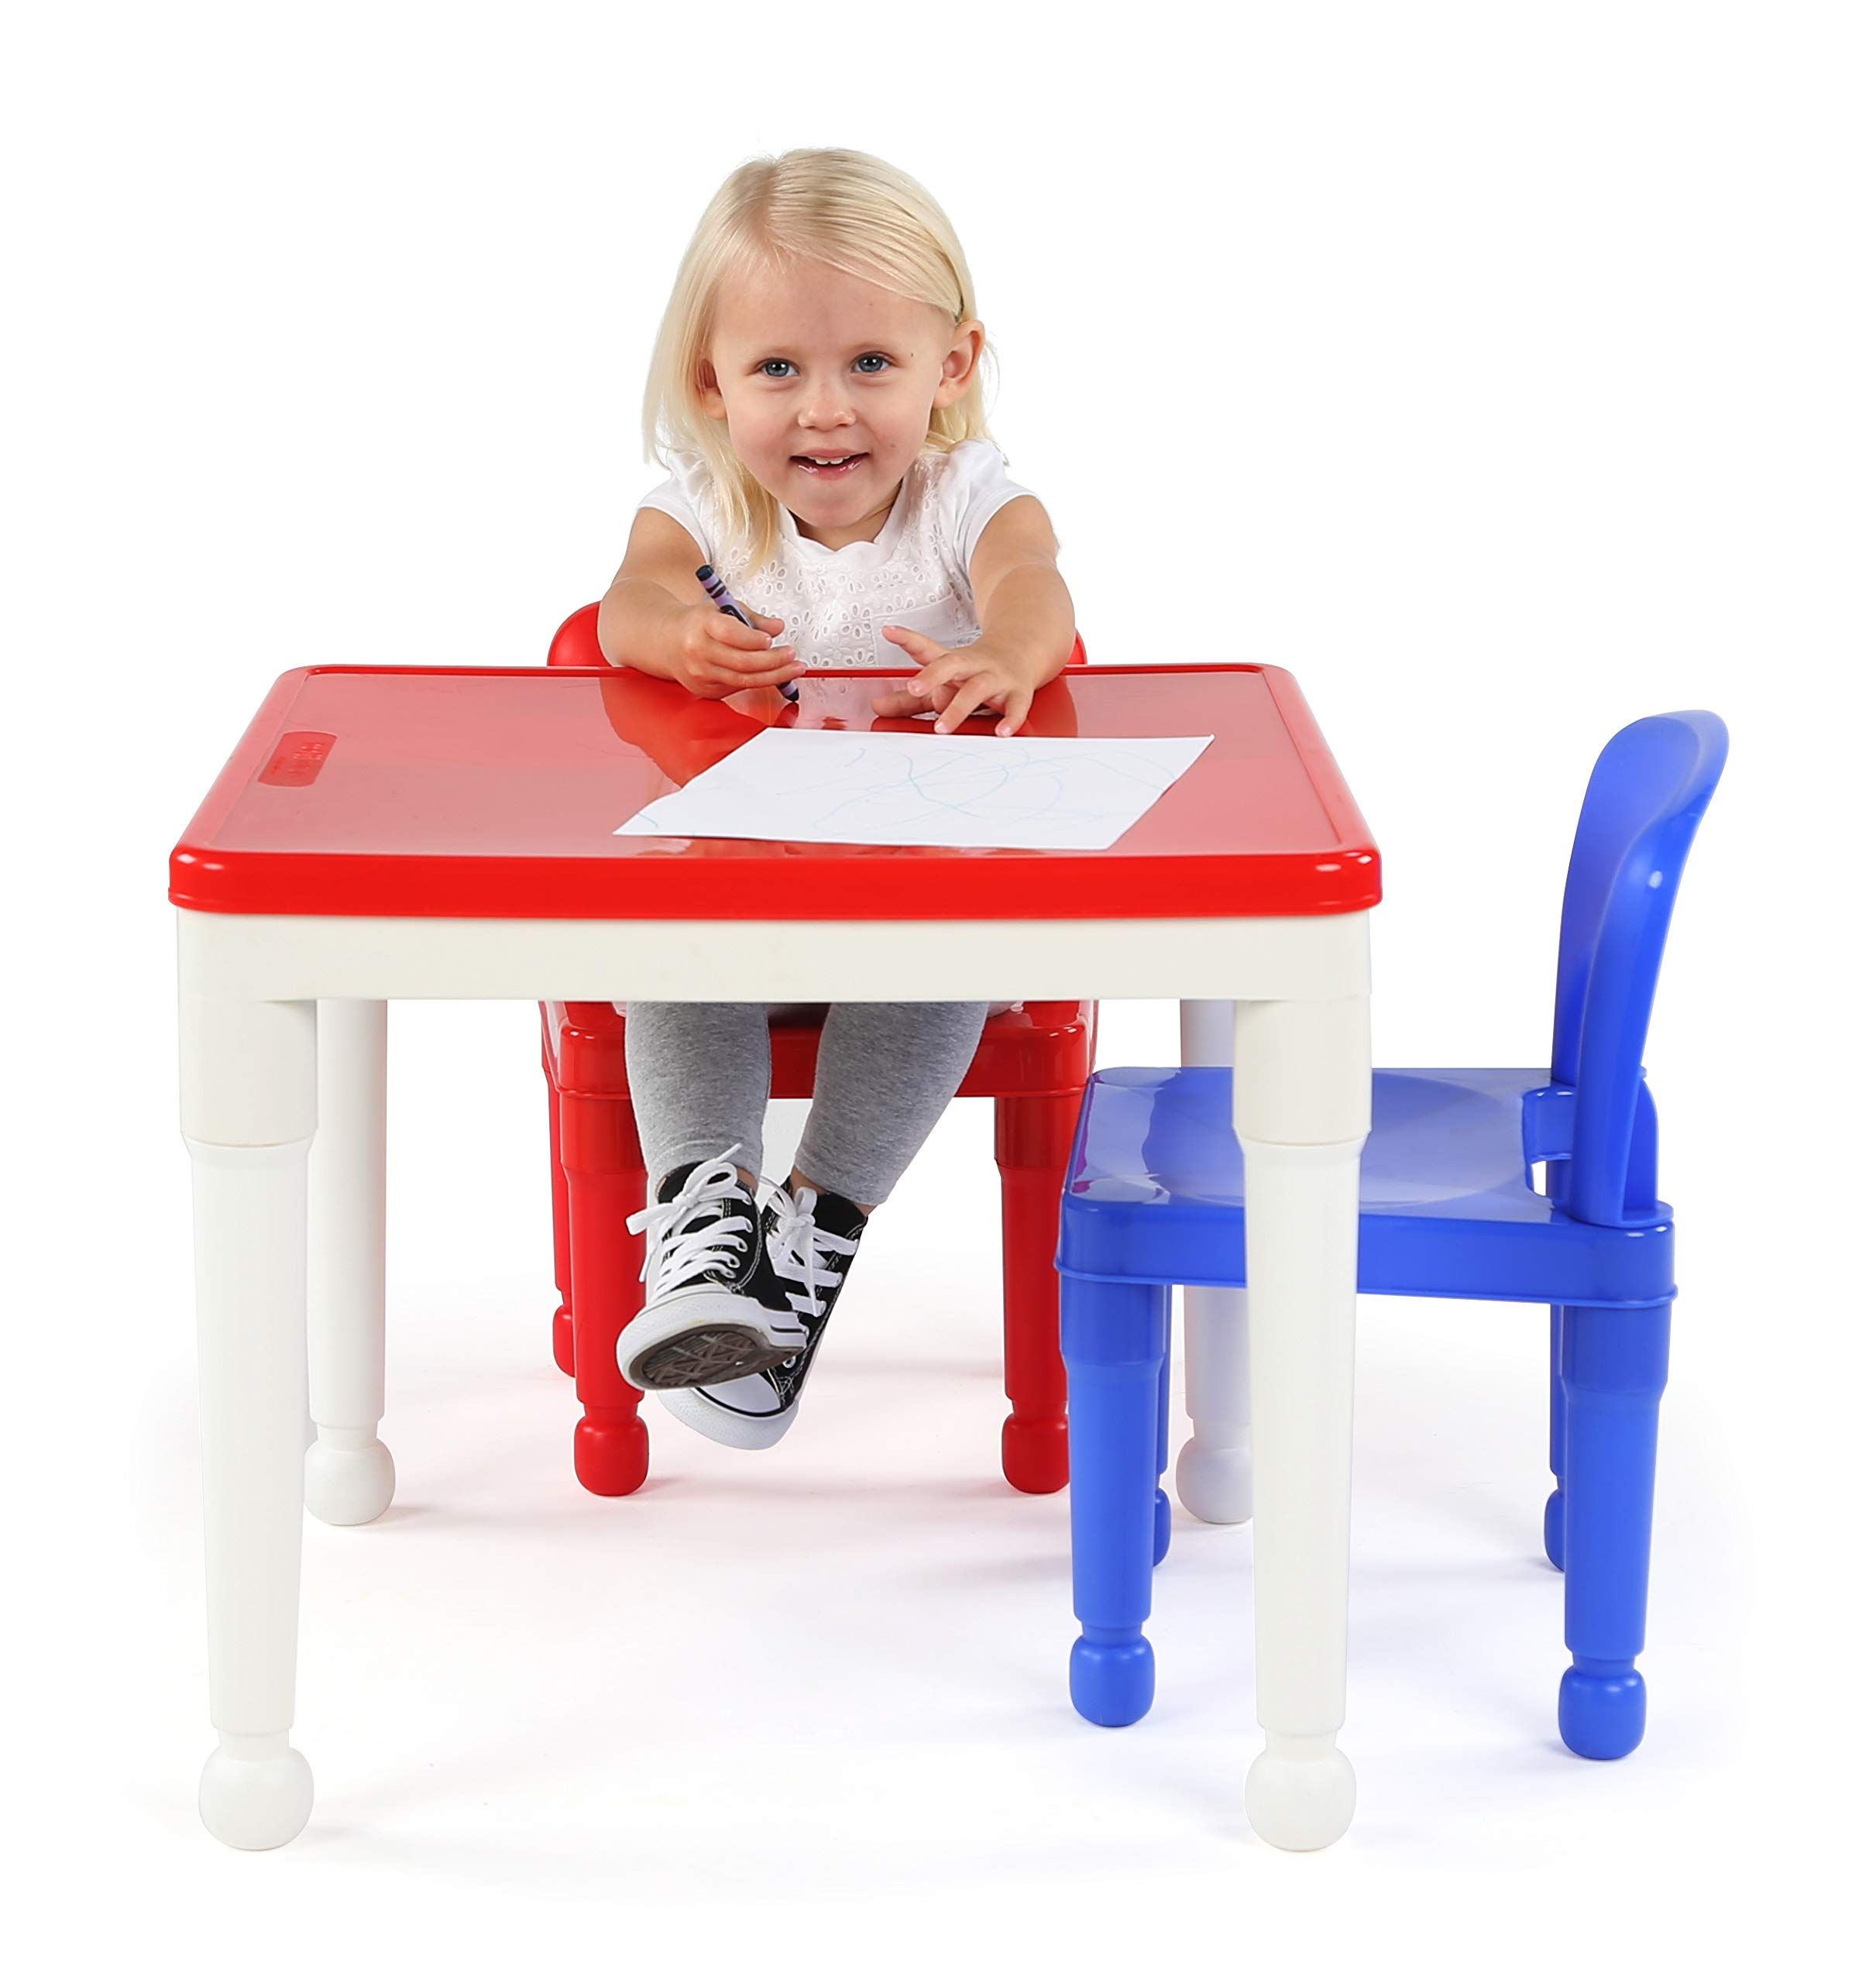 Tot Tutors Kids 2in1 Plastic Building Blockscompatible Activity Table And 2 Chairs Set Square Primary Colors Read More A In 2020 Kids Furniture Kids Primary Colors